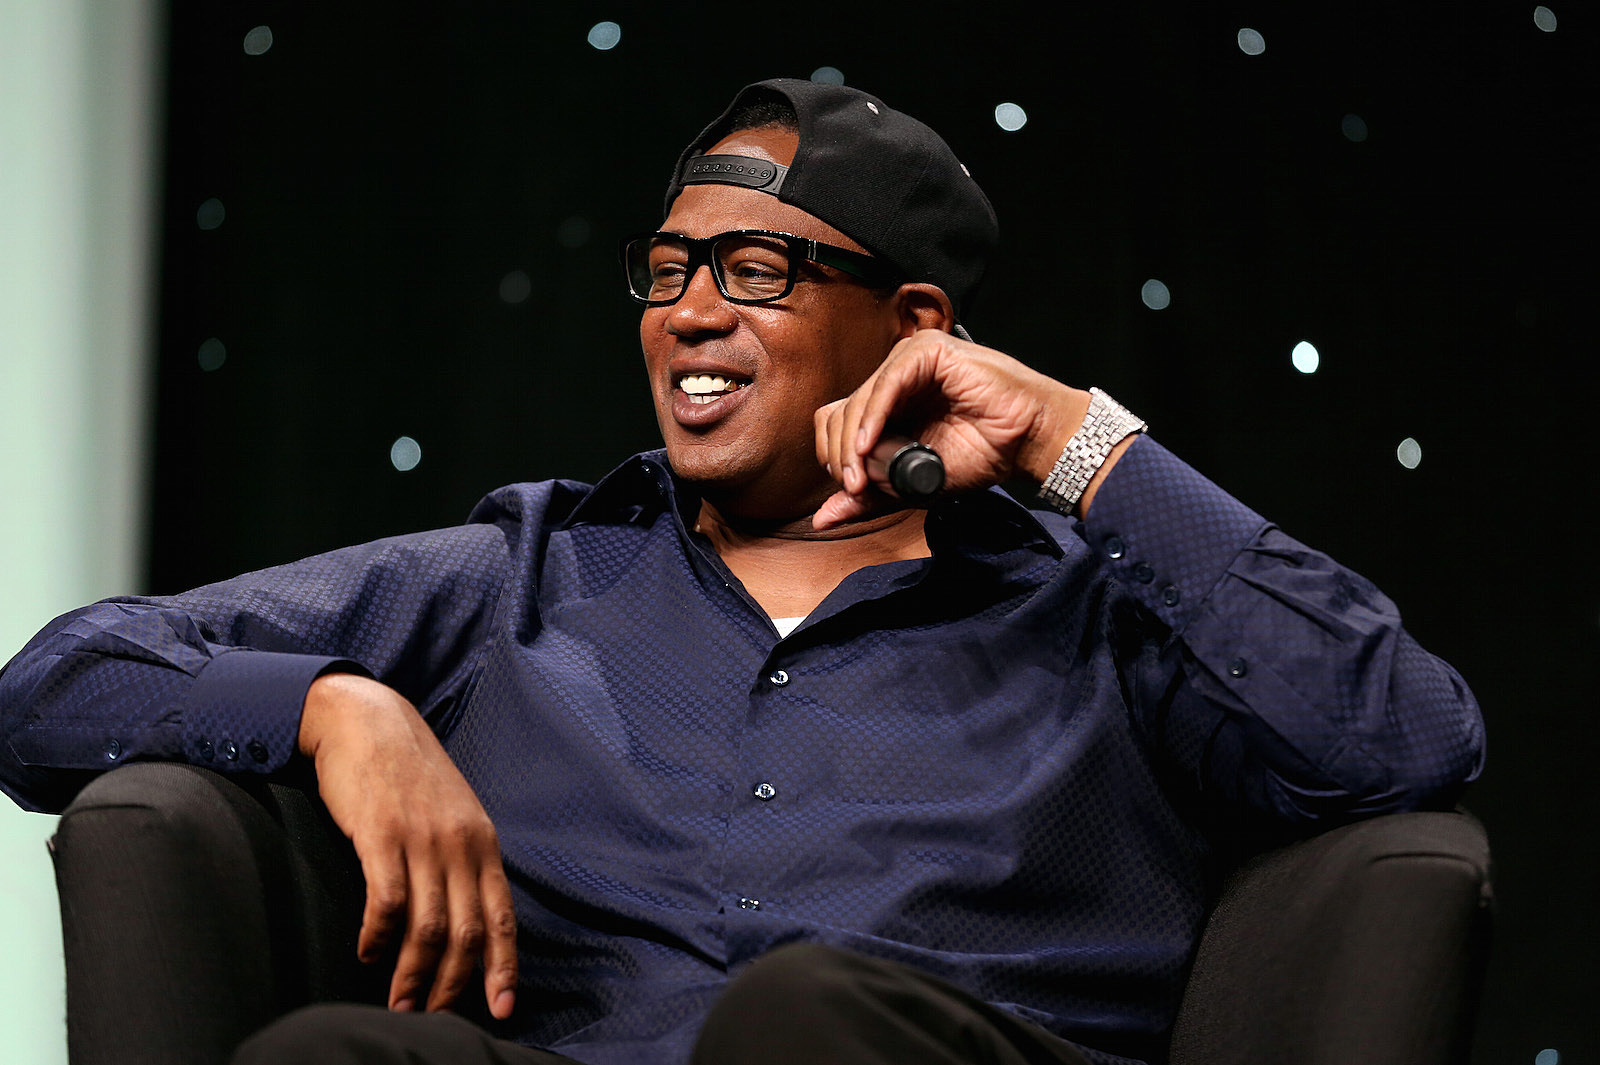 Master P Says He Could Beat Kobe Bryant 1-on-1